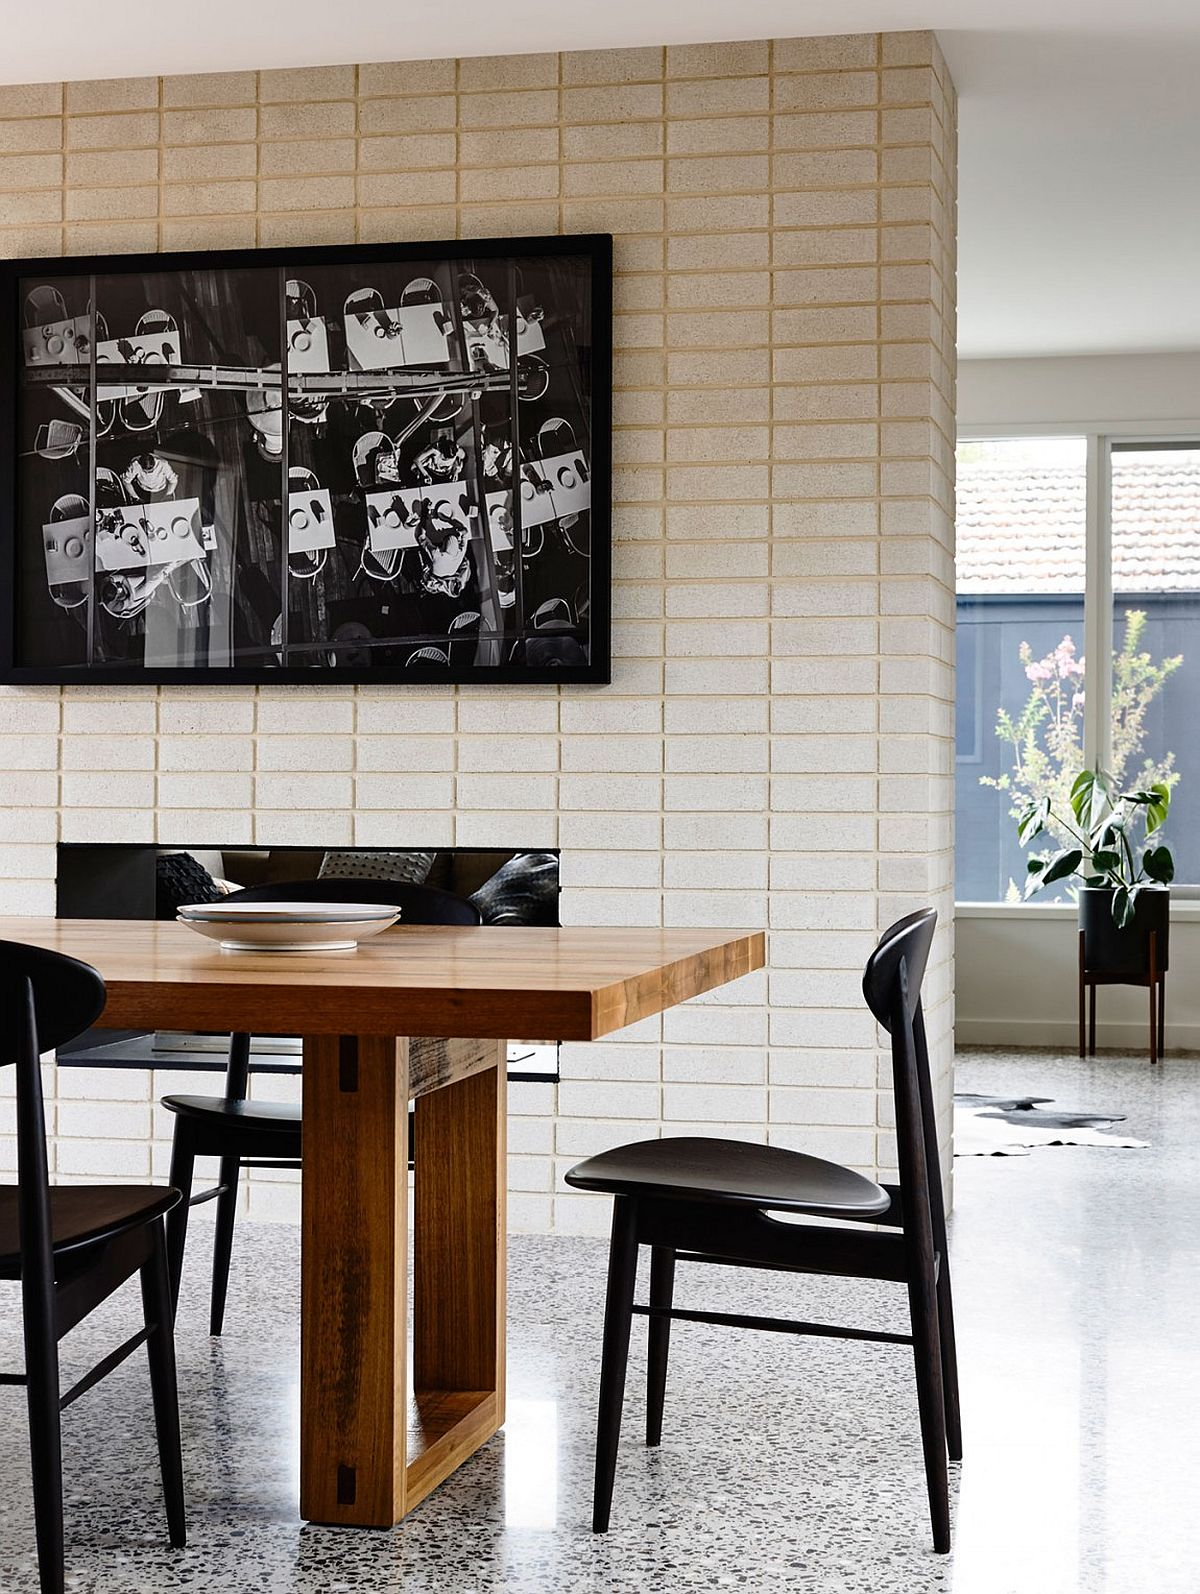 Concrete blocks bring an interesting textural contrast to the living space